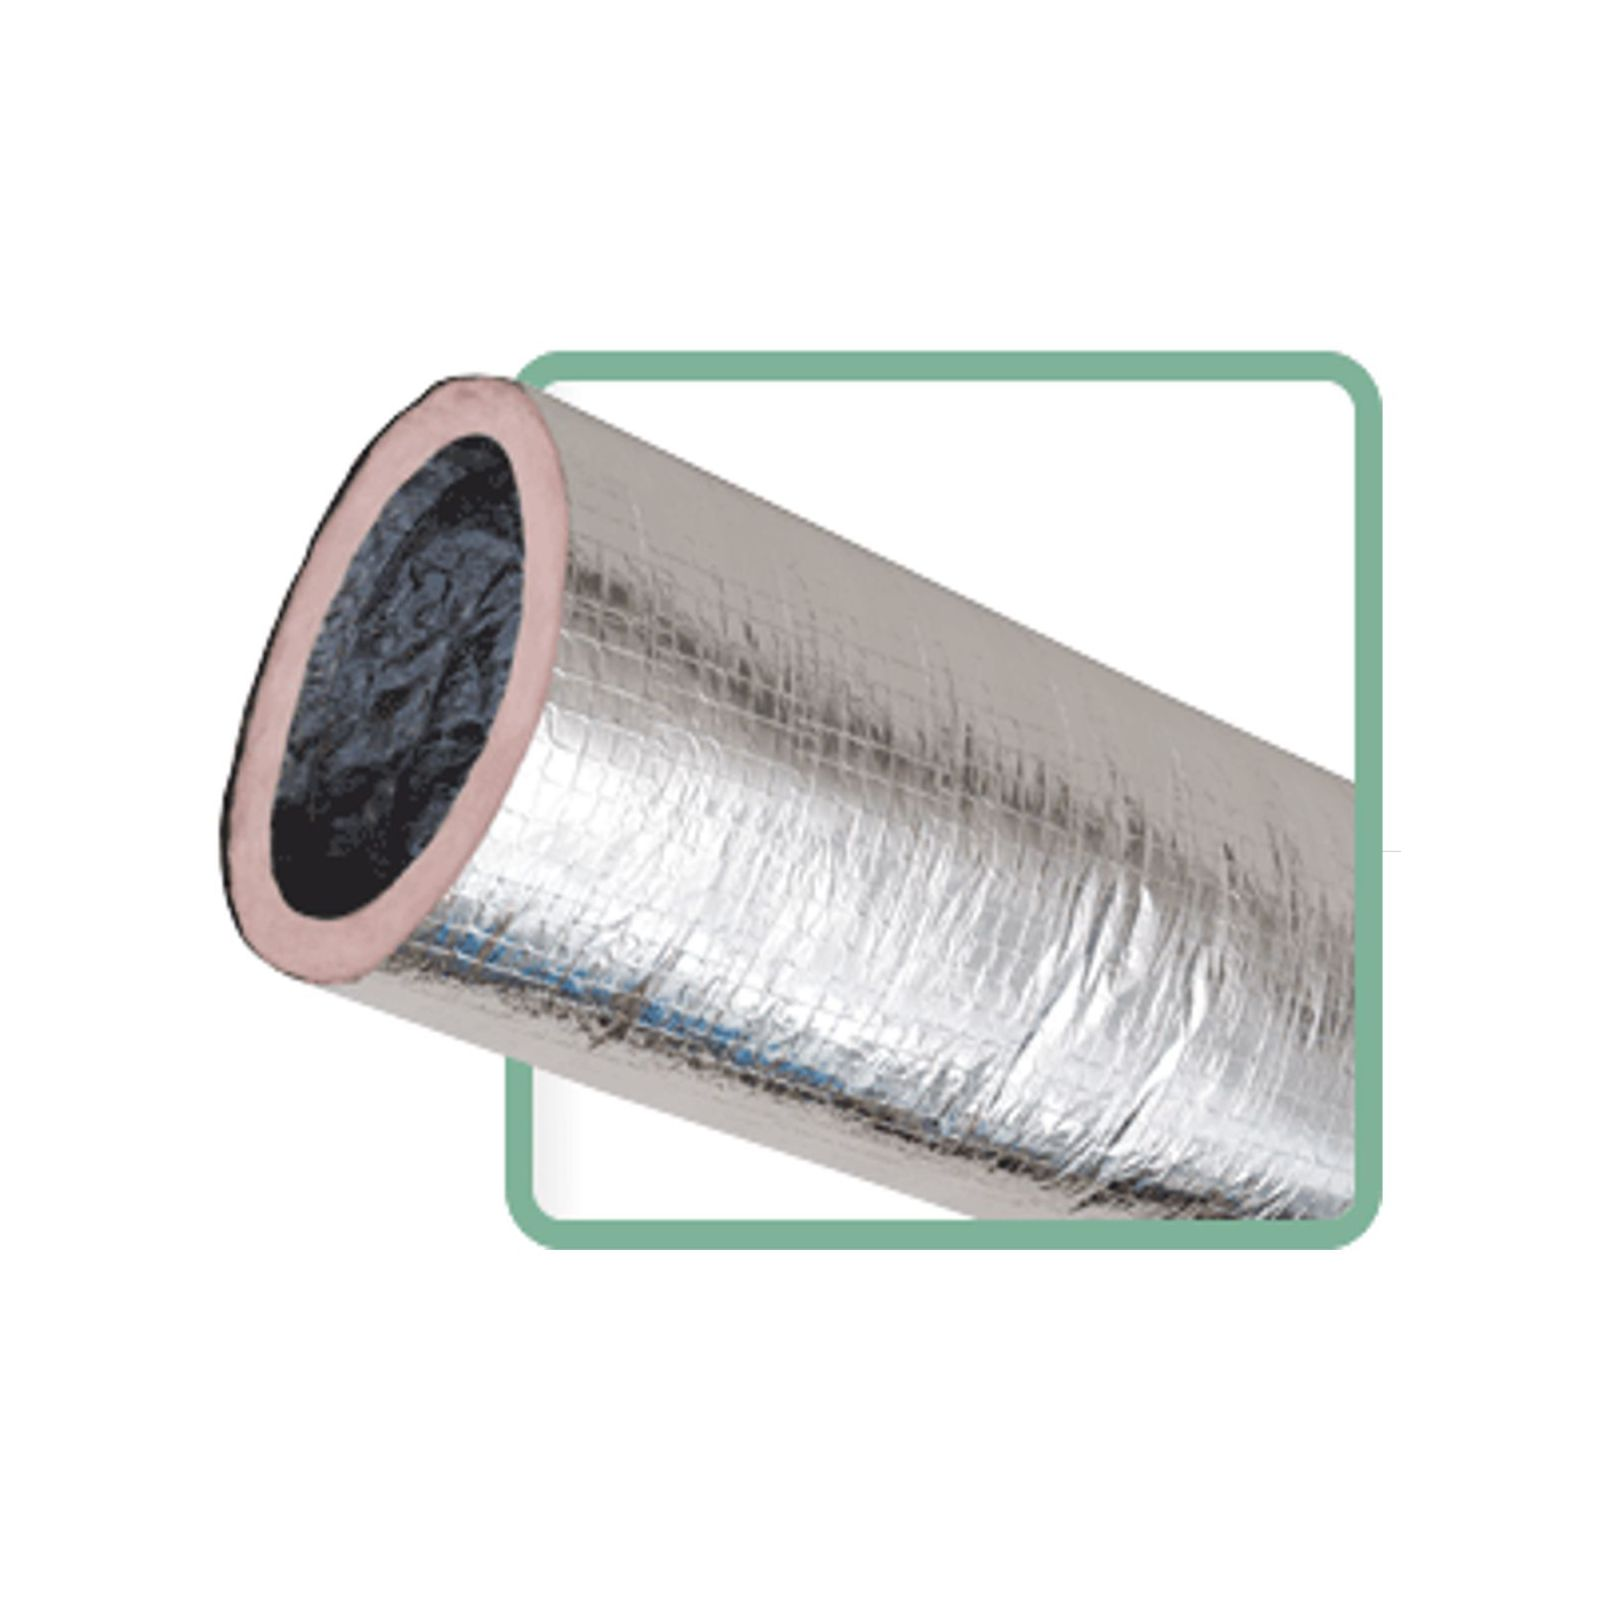 "Thermaflex 056318000107 - KM Silver Flex-Vent Insulated Flexible Duct Assembly, 18"" X 7', R8"